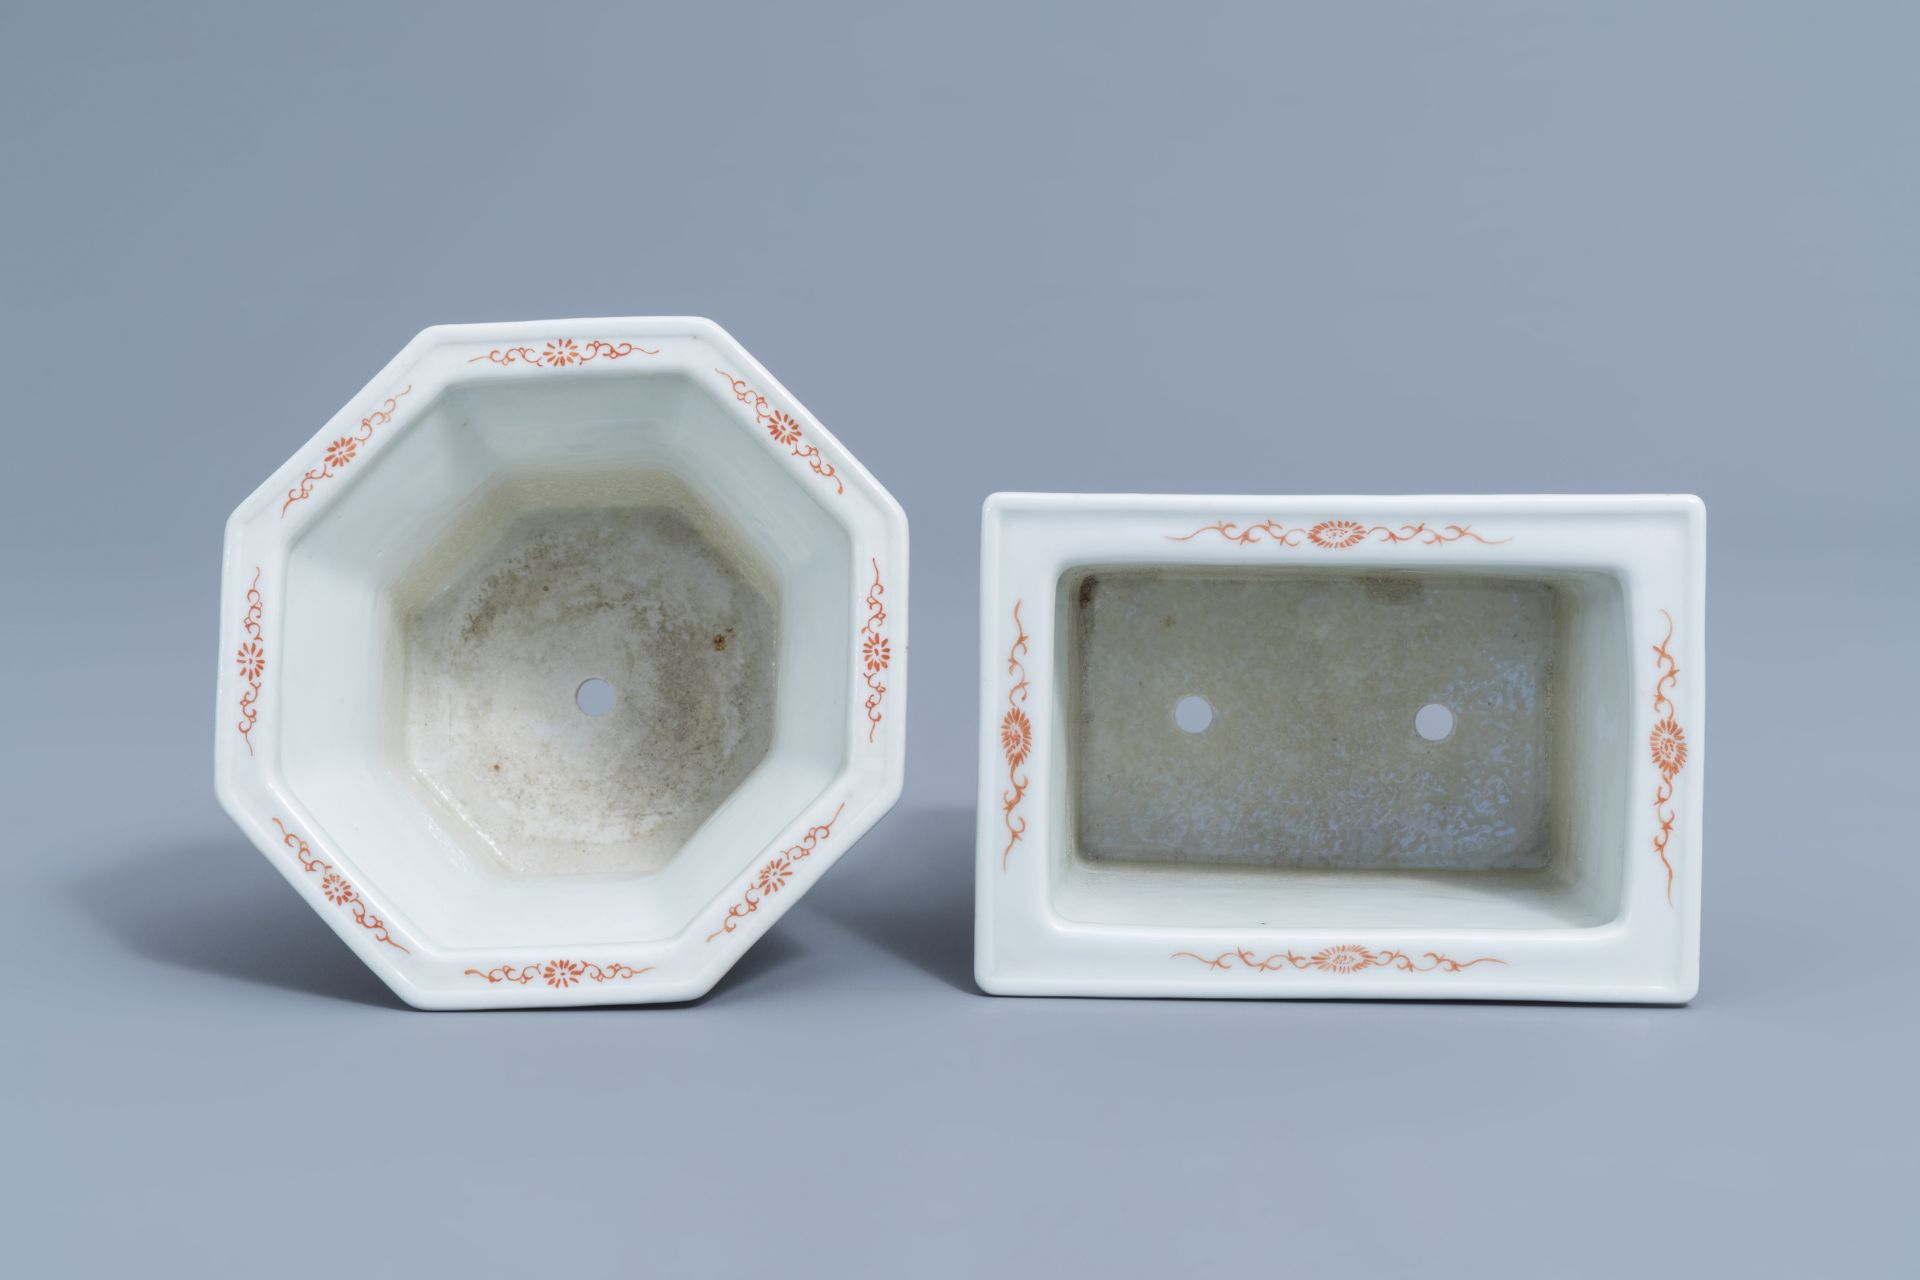 Two Chinese famille rose jardinires and a bowl with floral design, 20th C. - Image 6 of 15